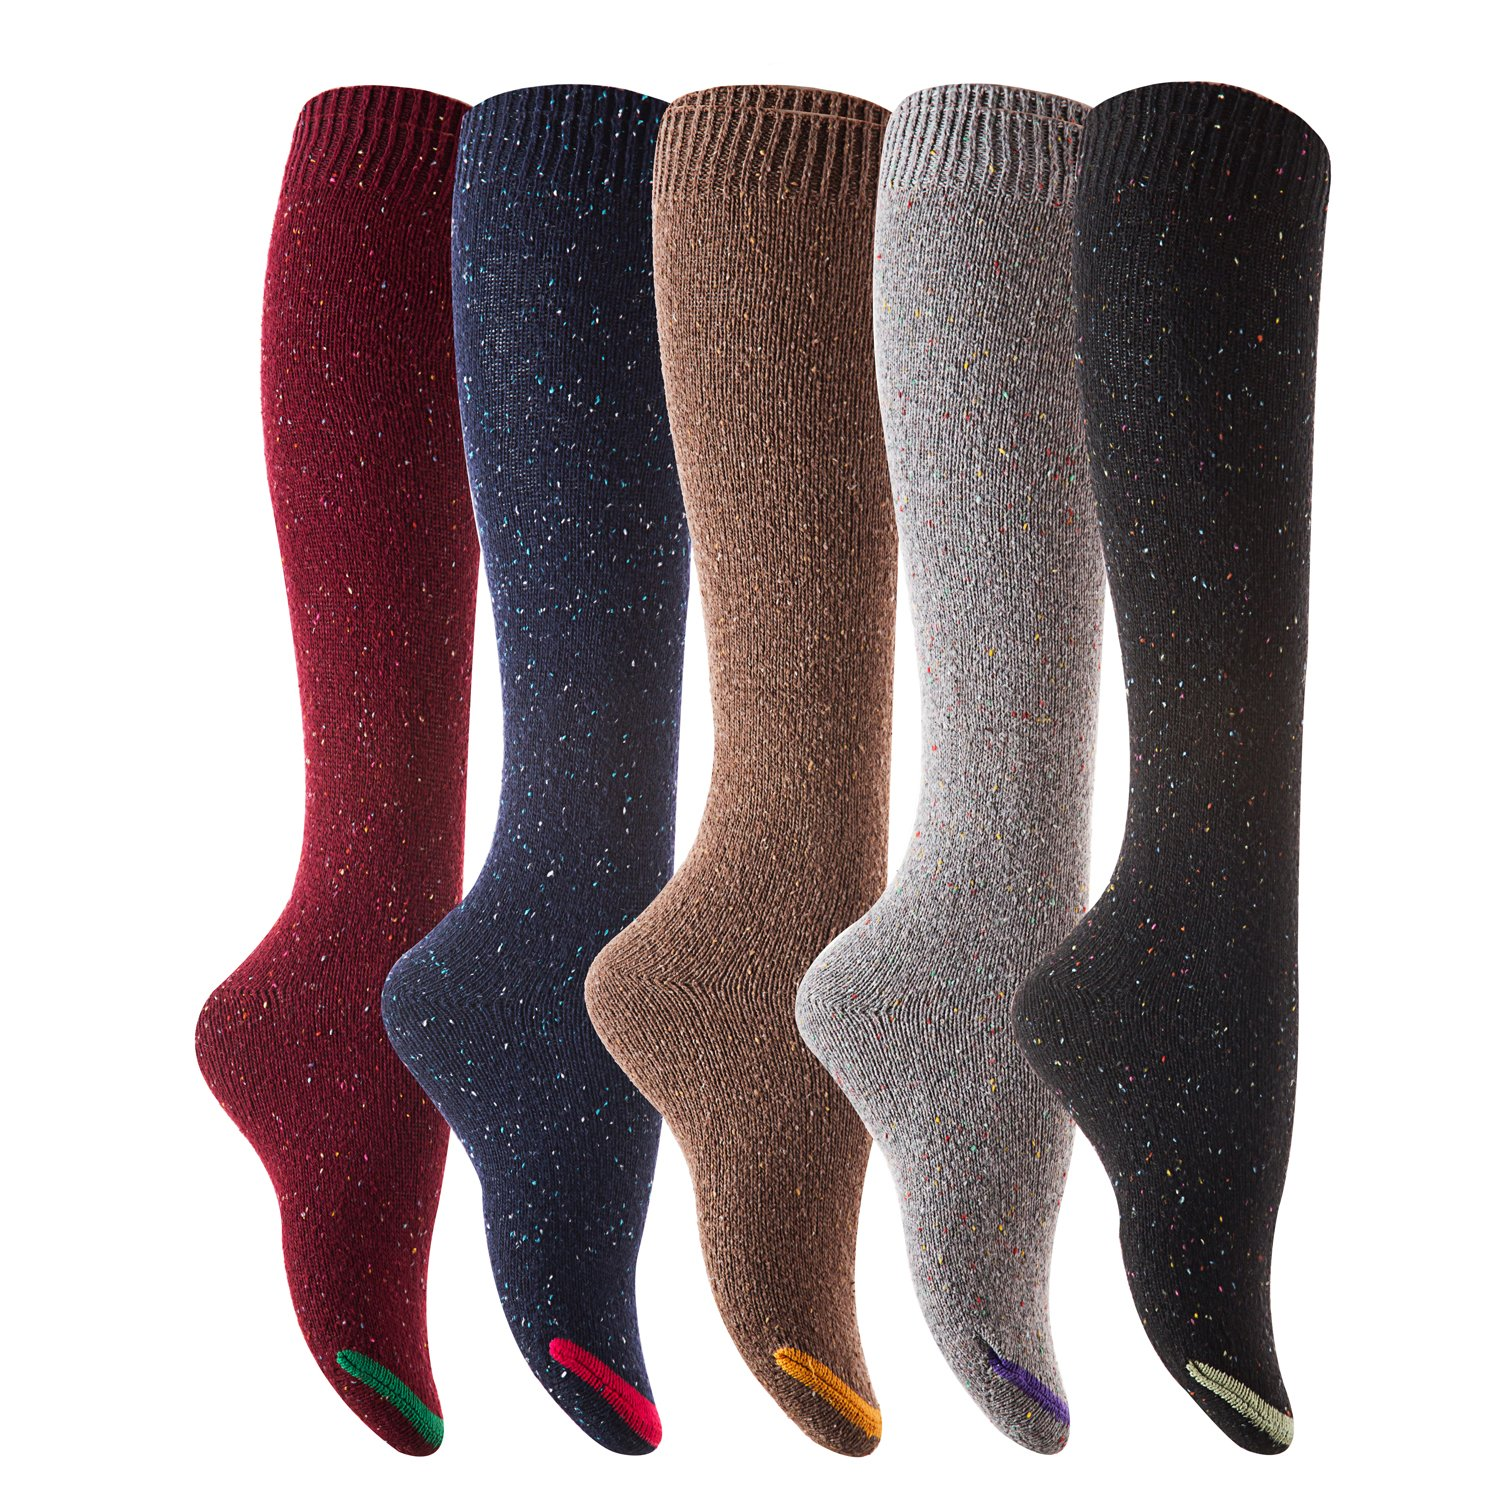 Lovely Annie Womens 5 Pairs Pack Knee High Cotton Socks Size 7-9